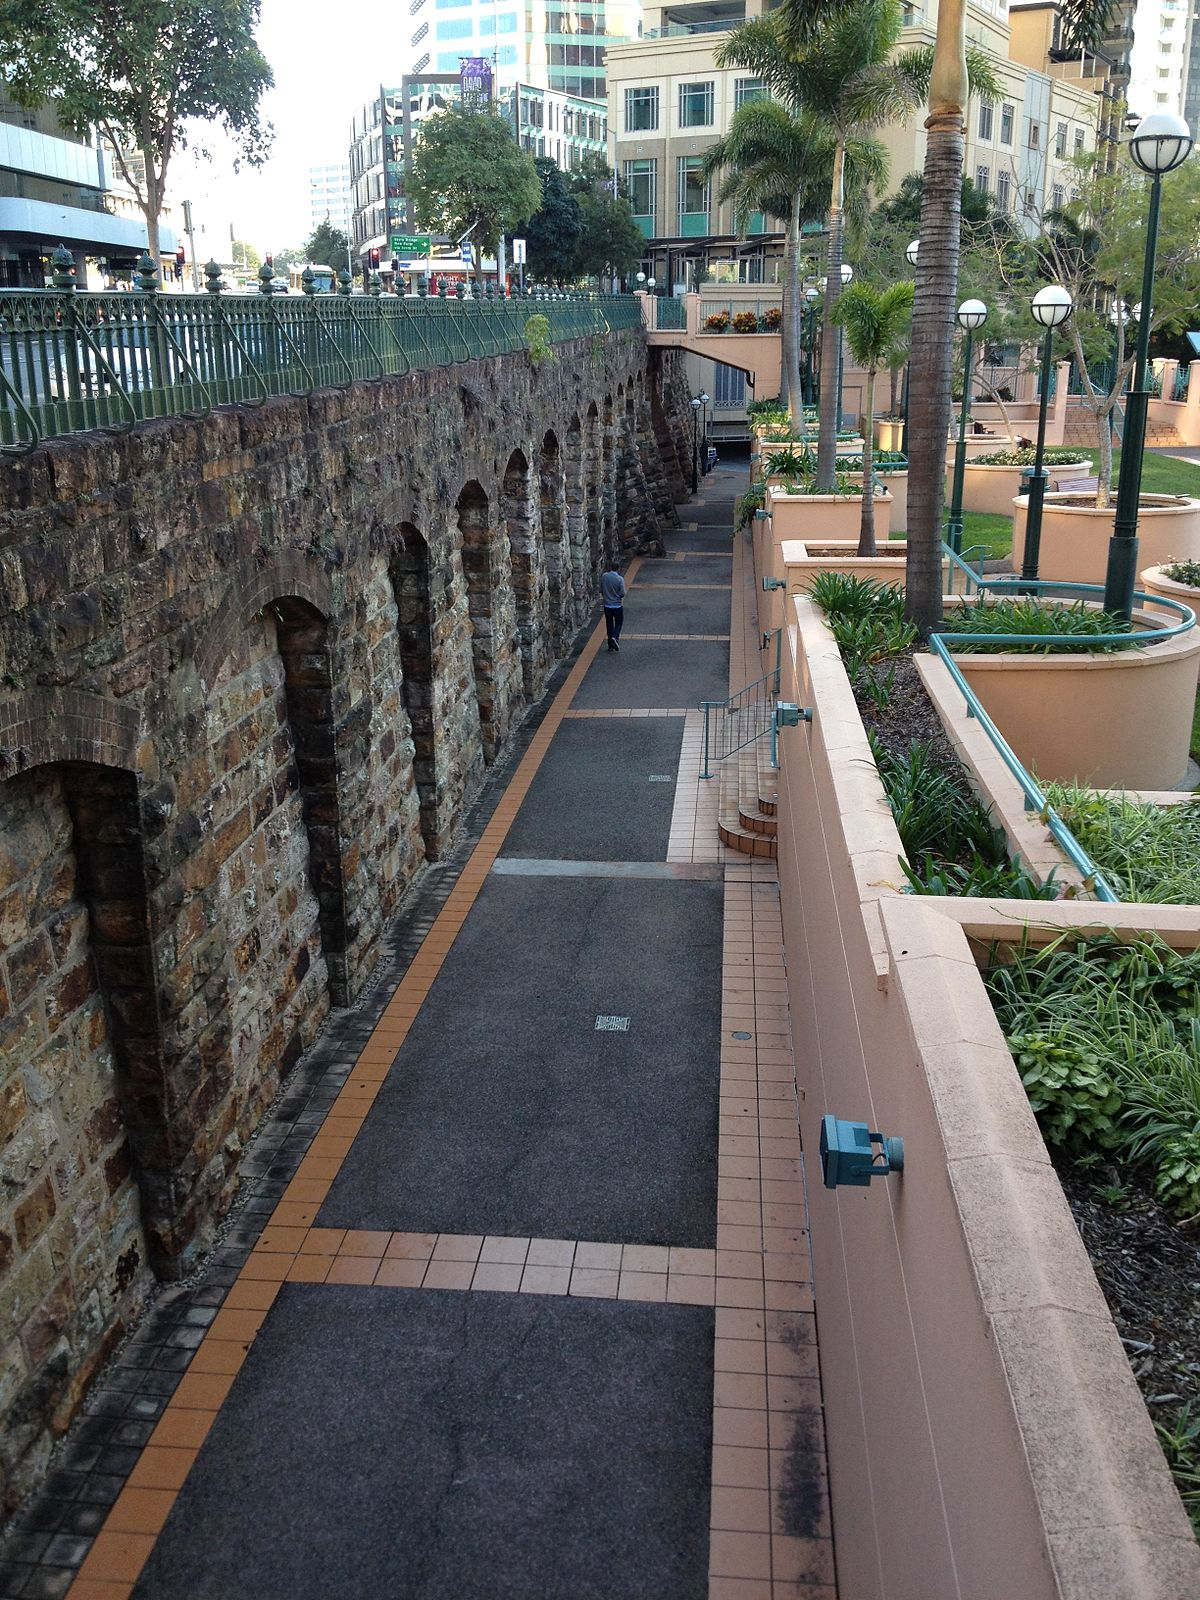 Petrie bight retaining wall wikipedia for Wall pictures